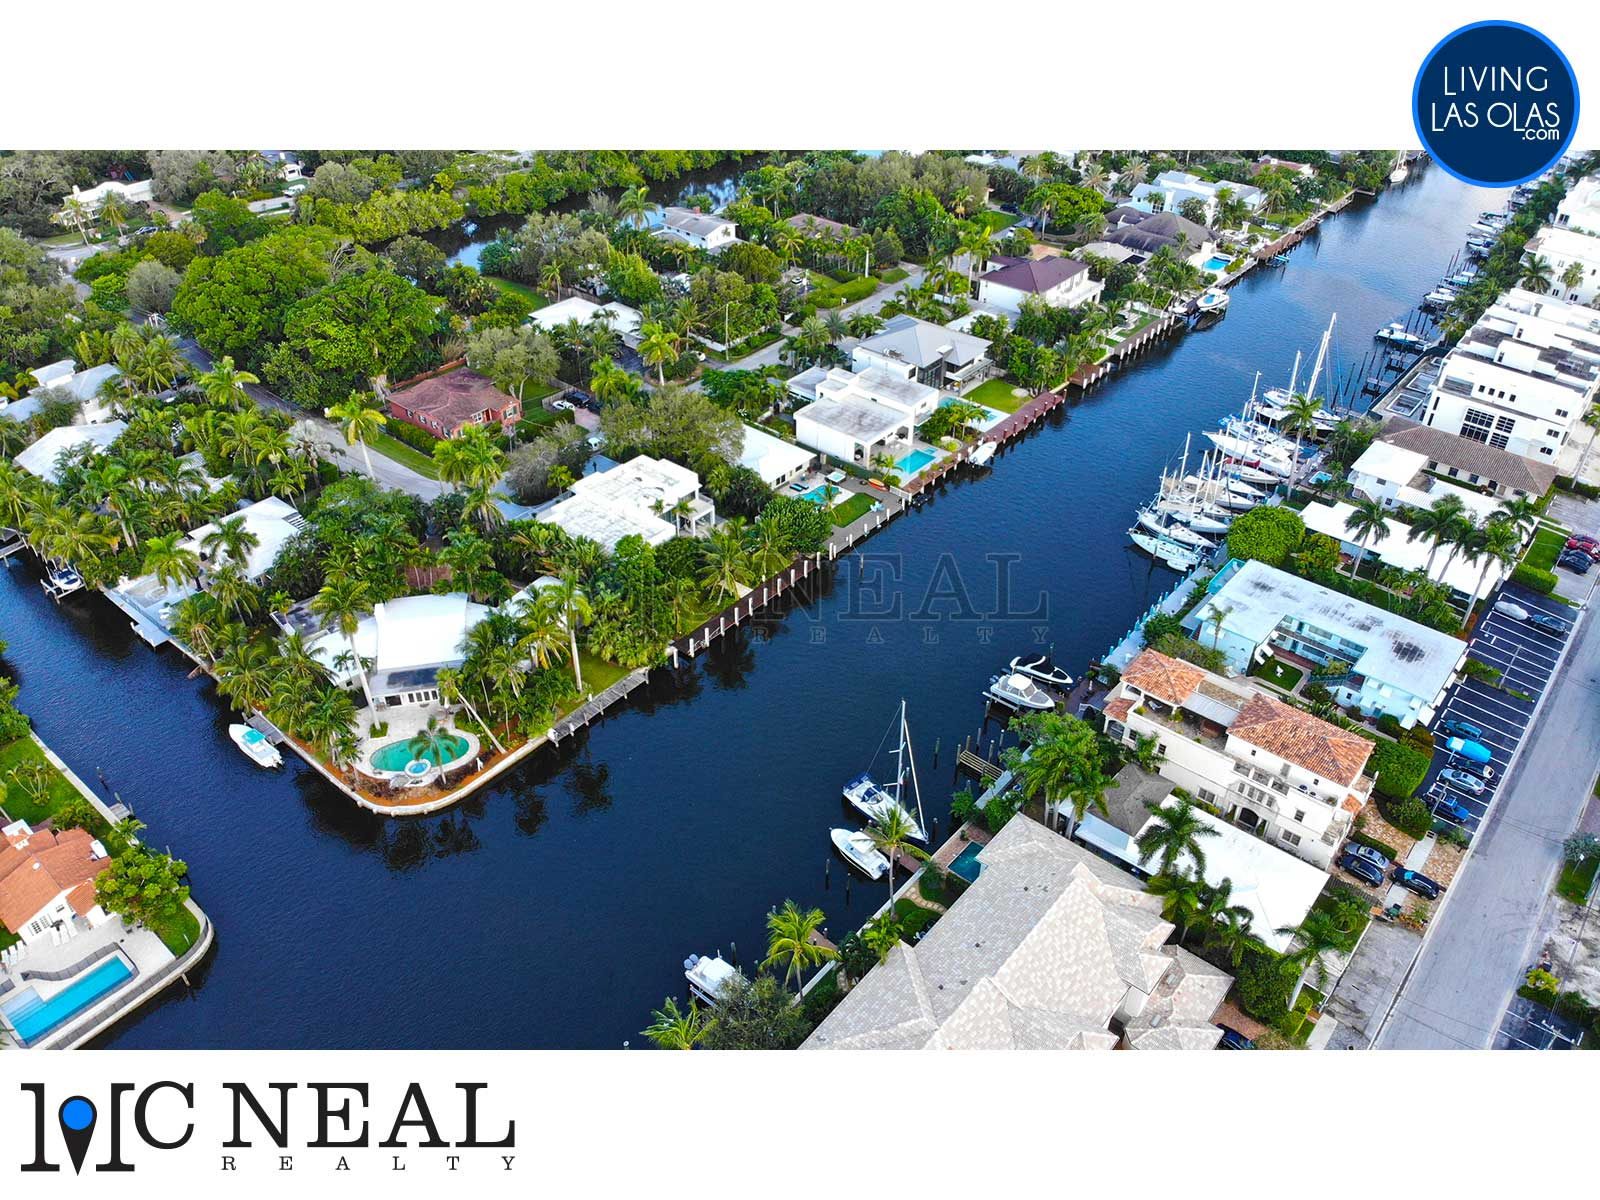 Hendricks Venice Isles Homes Real Estate 01